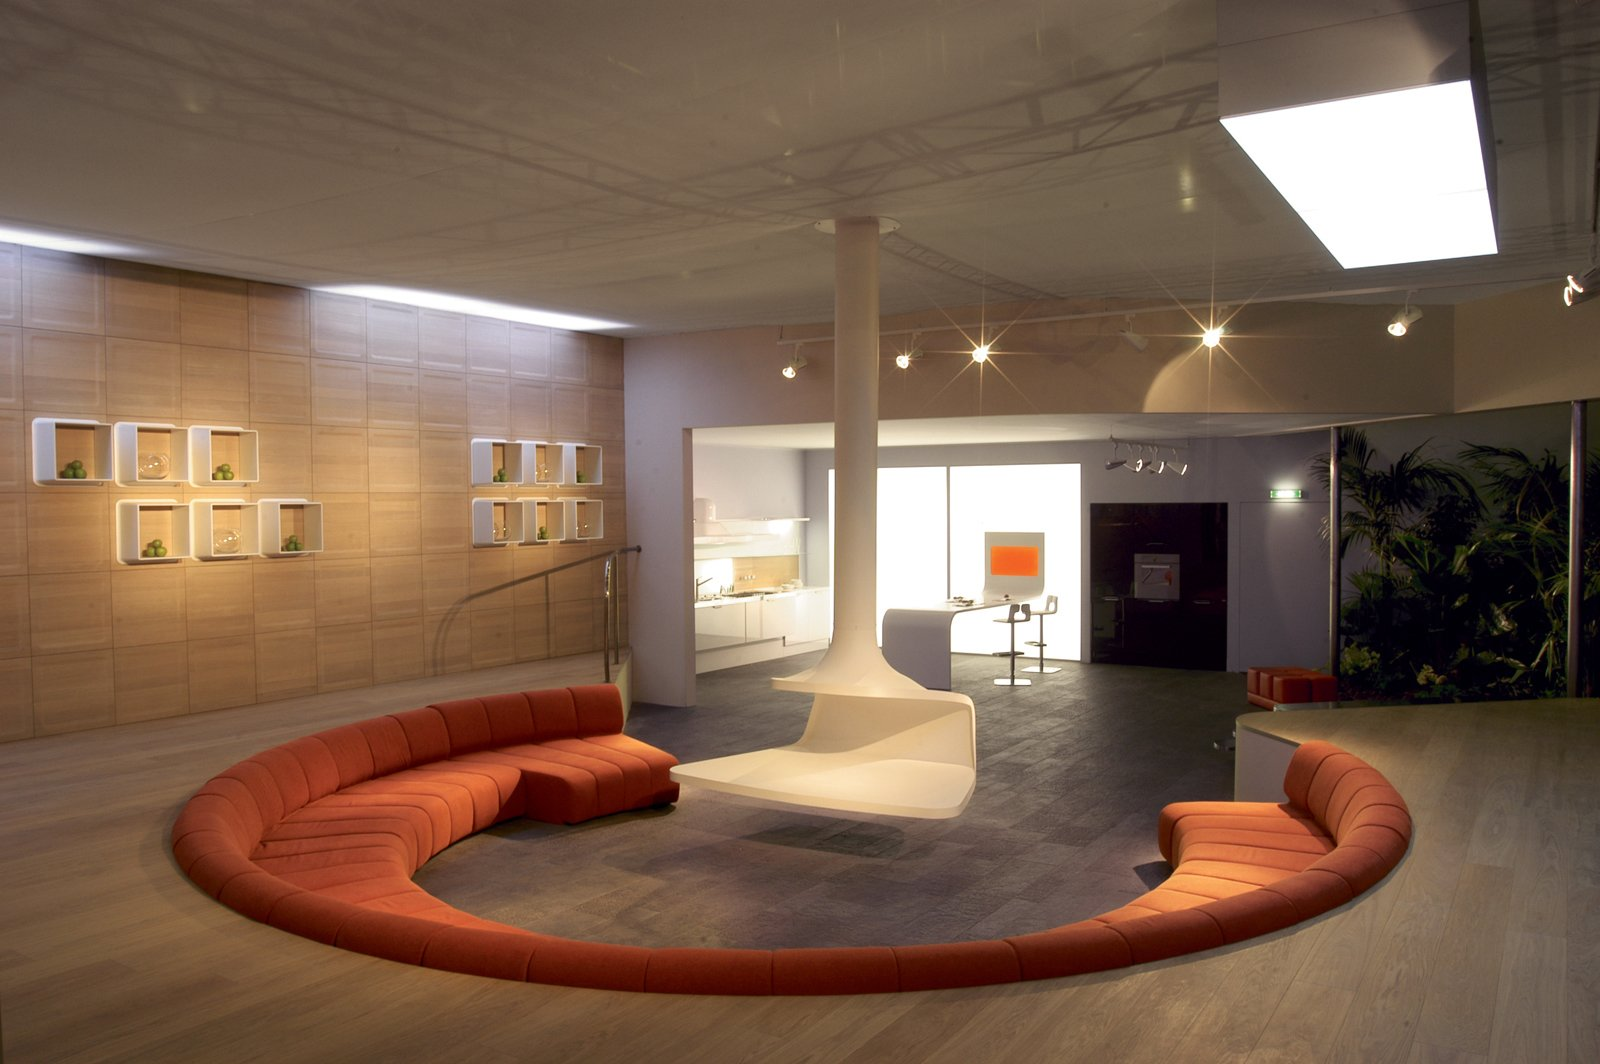 Casa Fluida featured an open layout of functionally flexible space inspired by the fluid city.